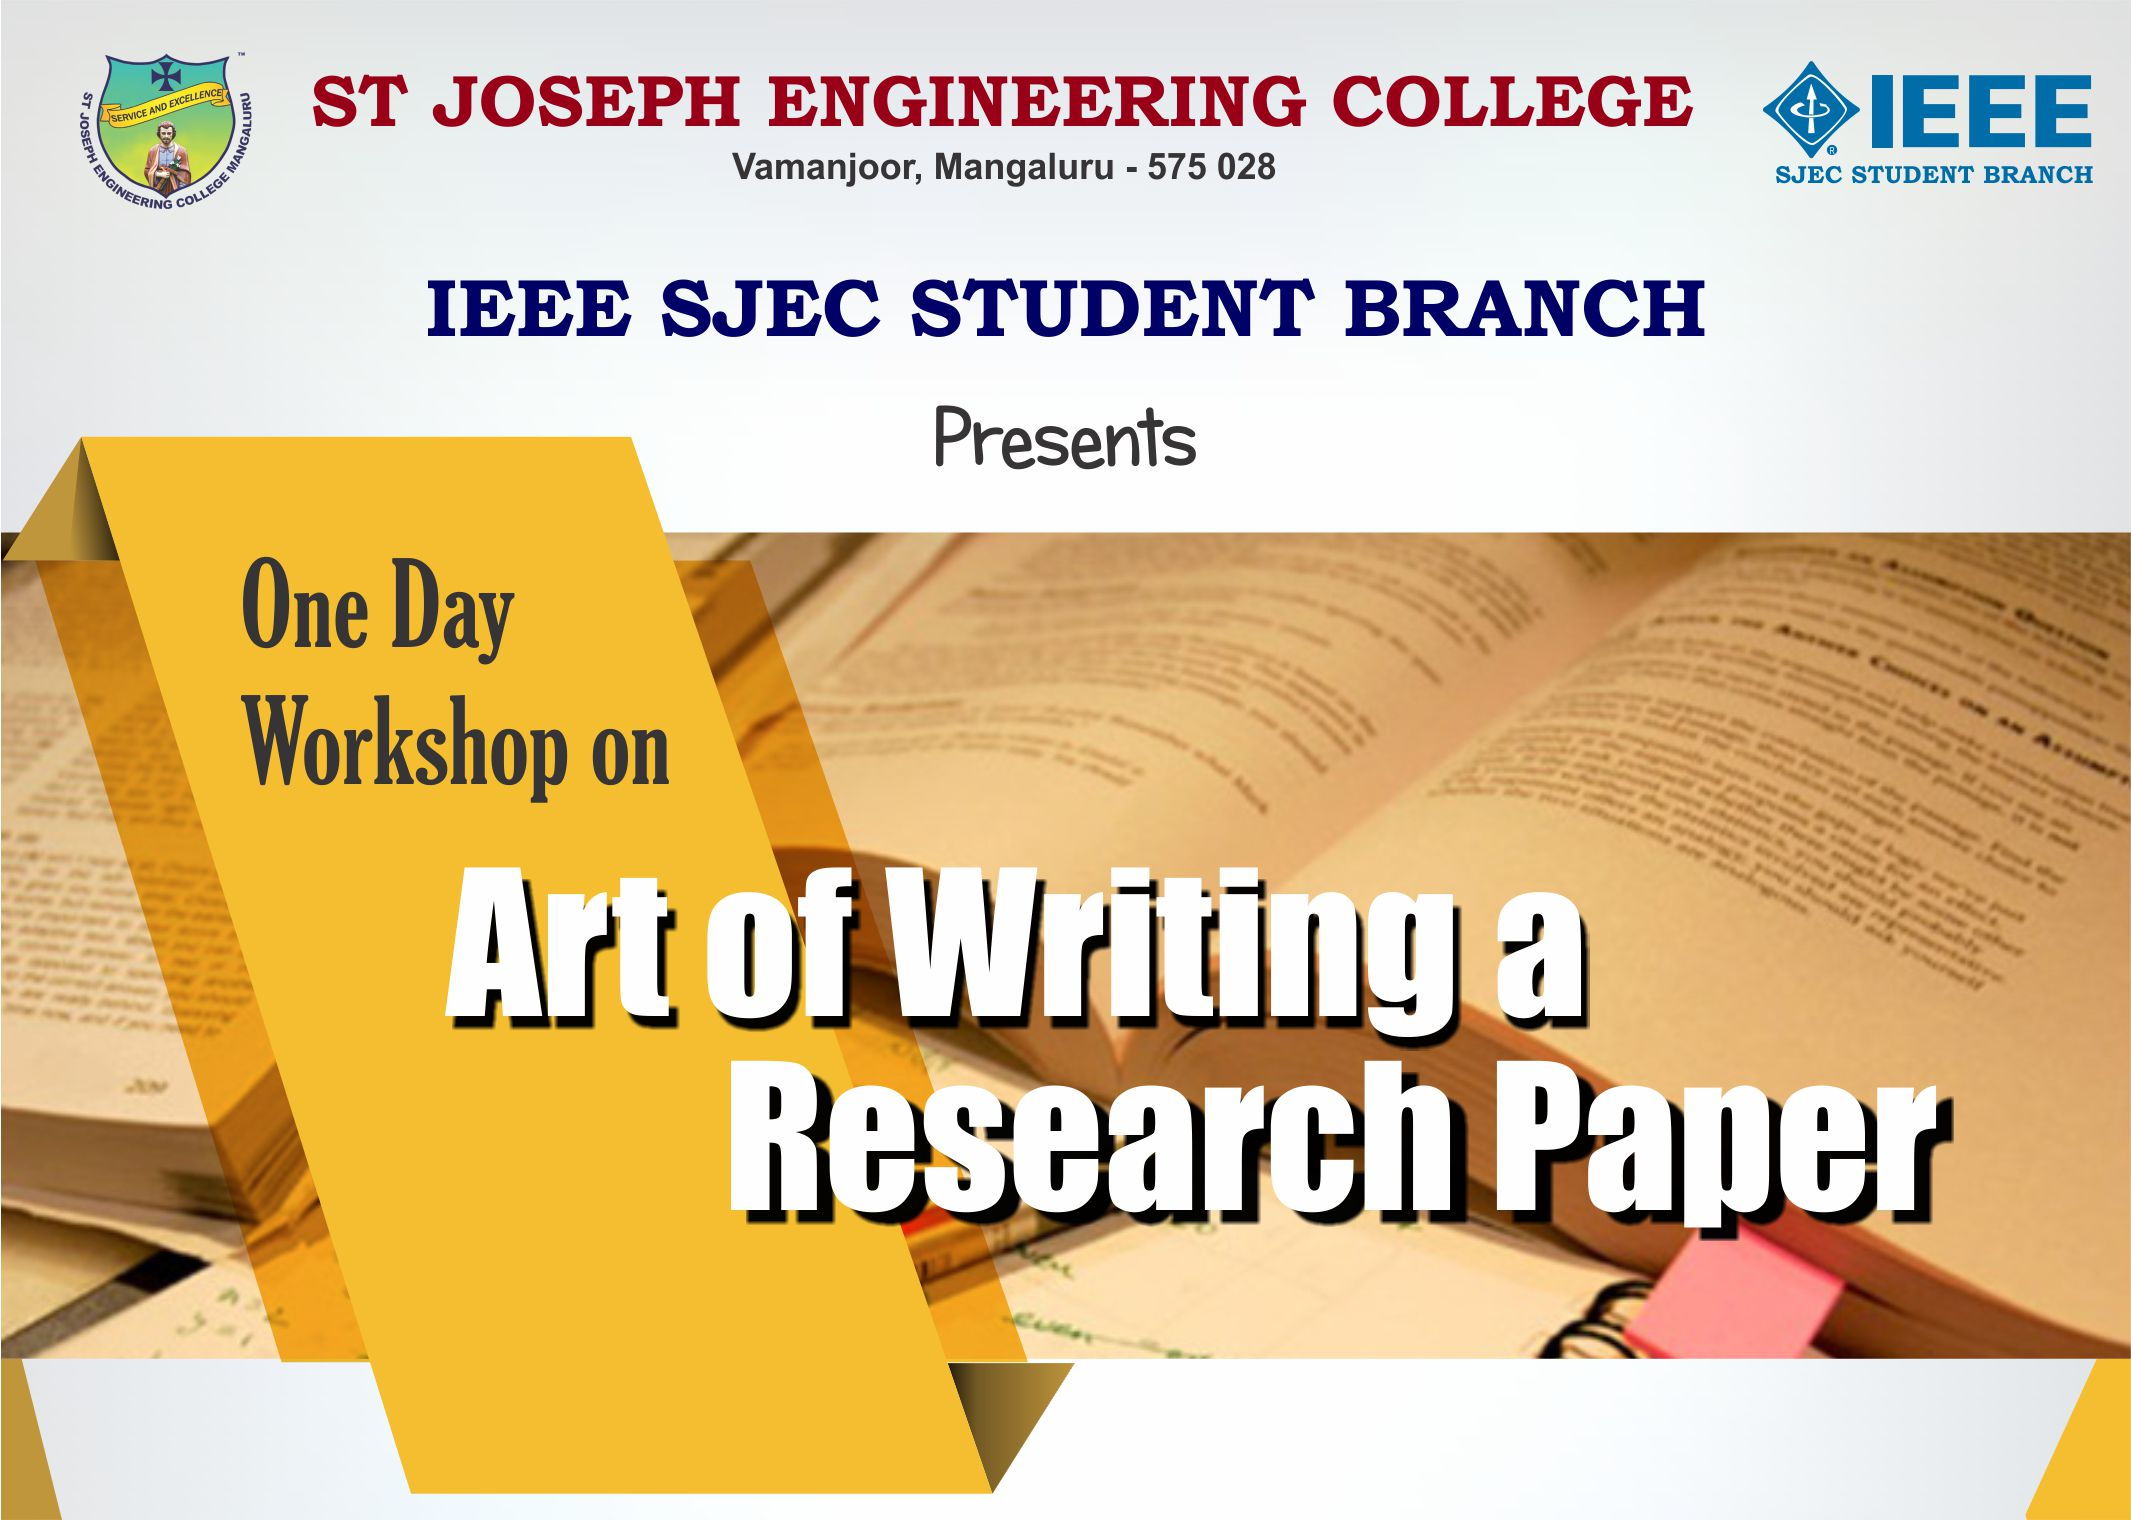 011 Workshop Banner Research Paper Striking Writing Meme Papers A Complete Guide 15th Edition Pdf Free 16th Full